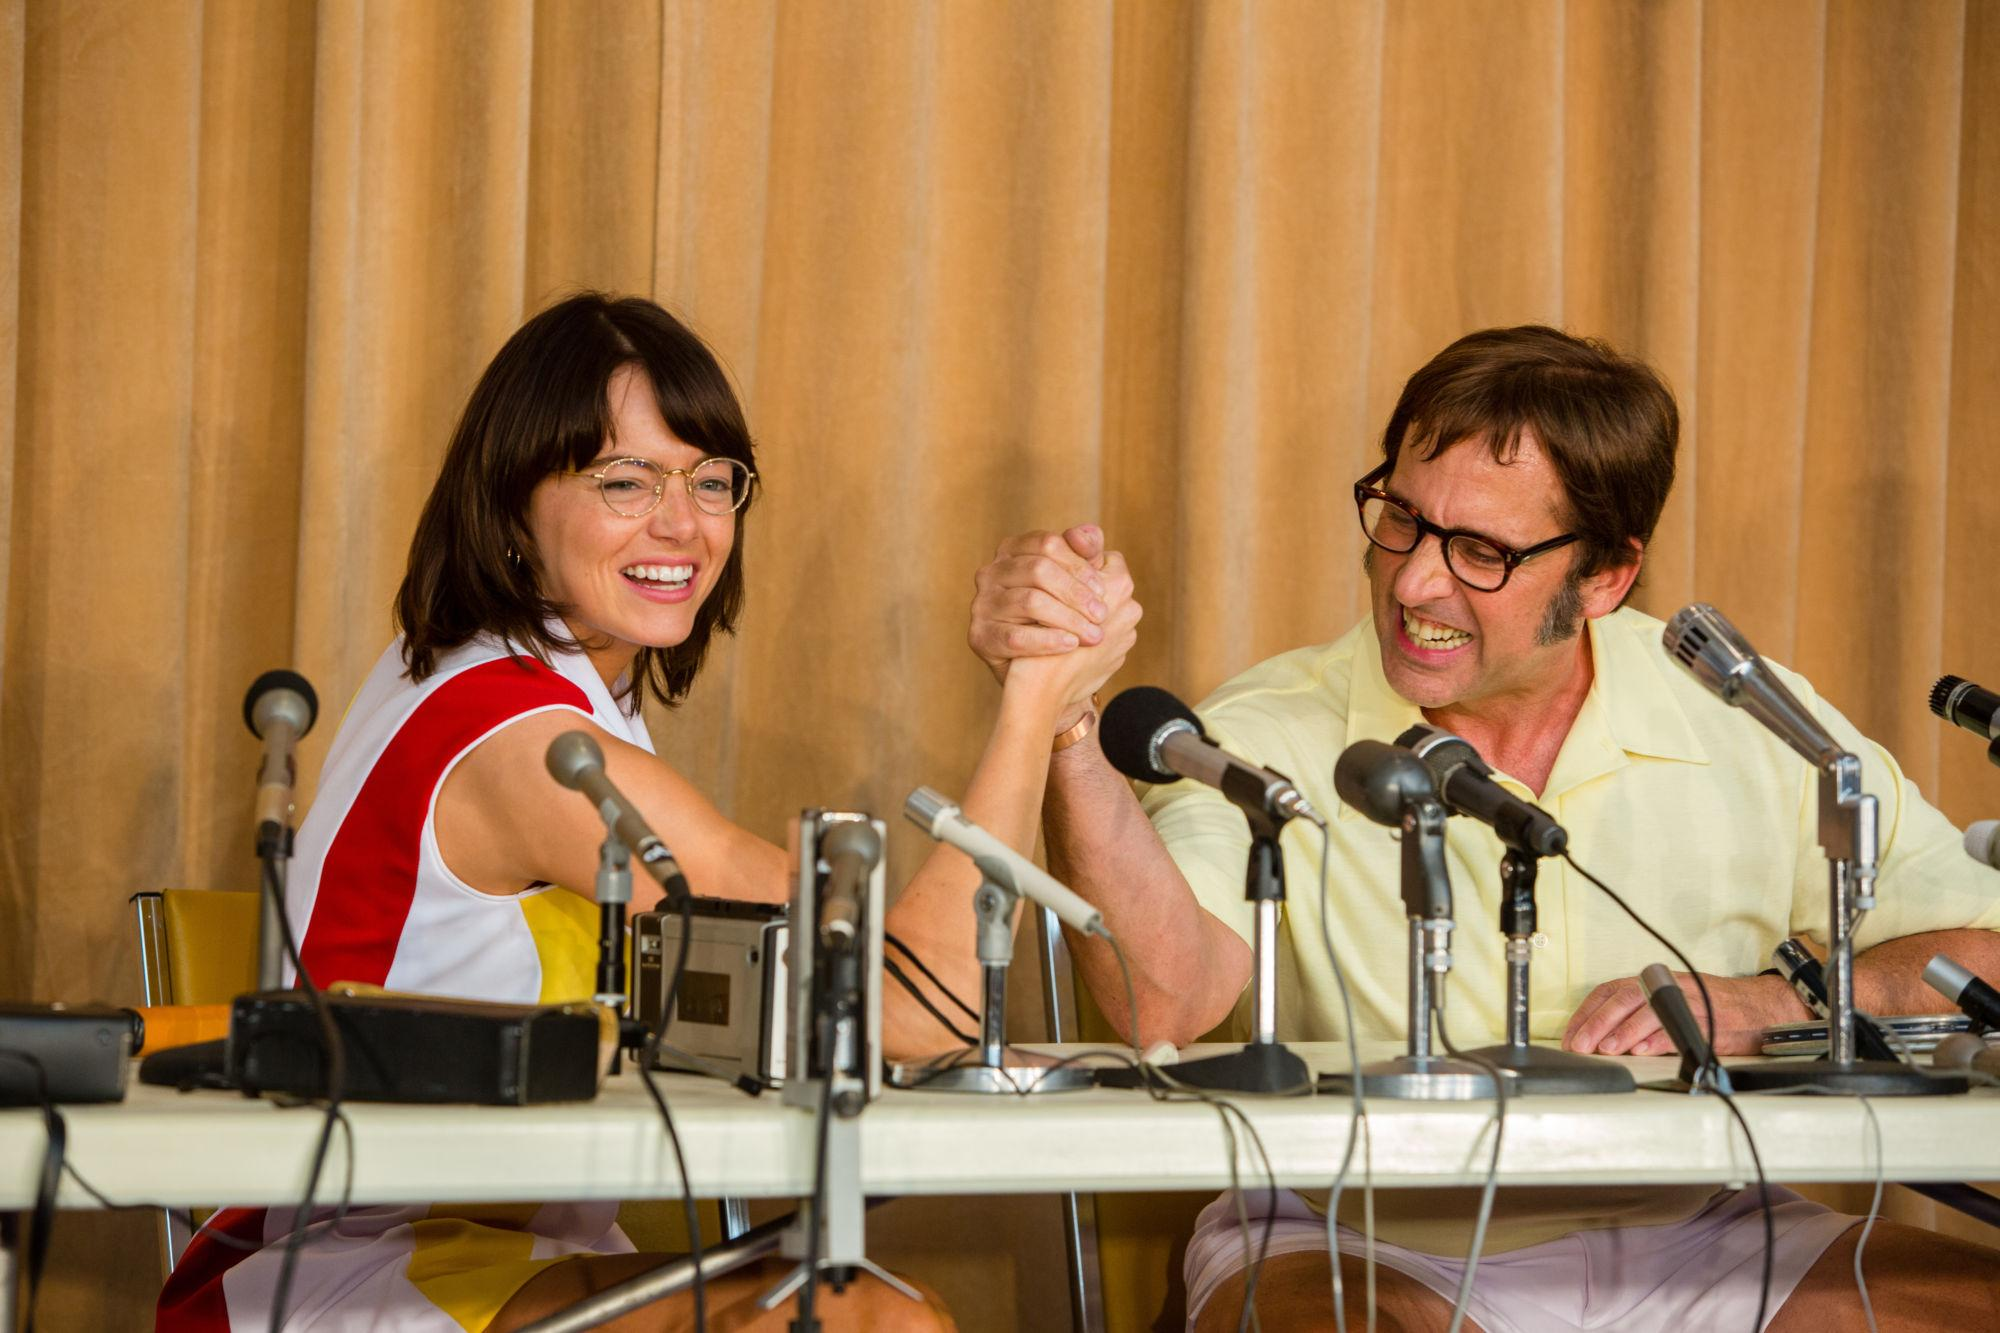 'Battle of the Sexes' shines light on story fighting for gender equality